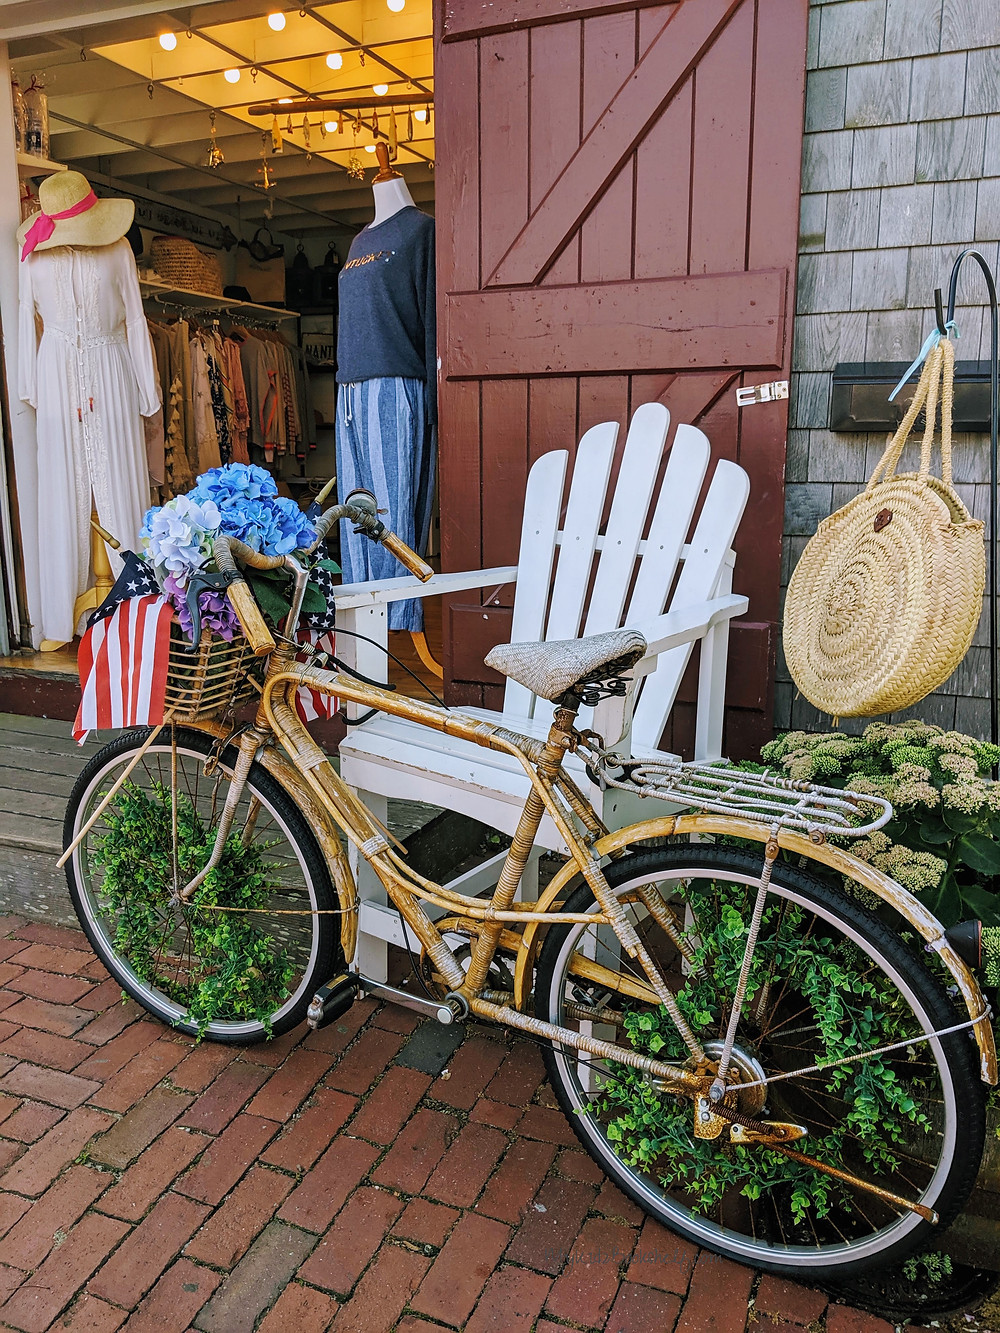 Bicycle-outside-of-shop-by-Nantucket-harbor-clothing-shop